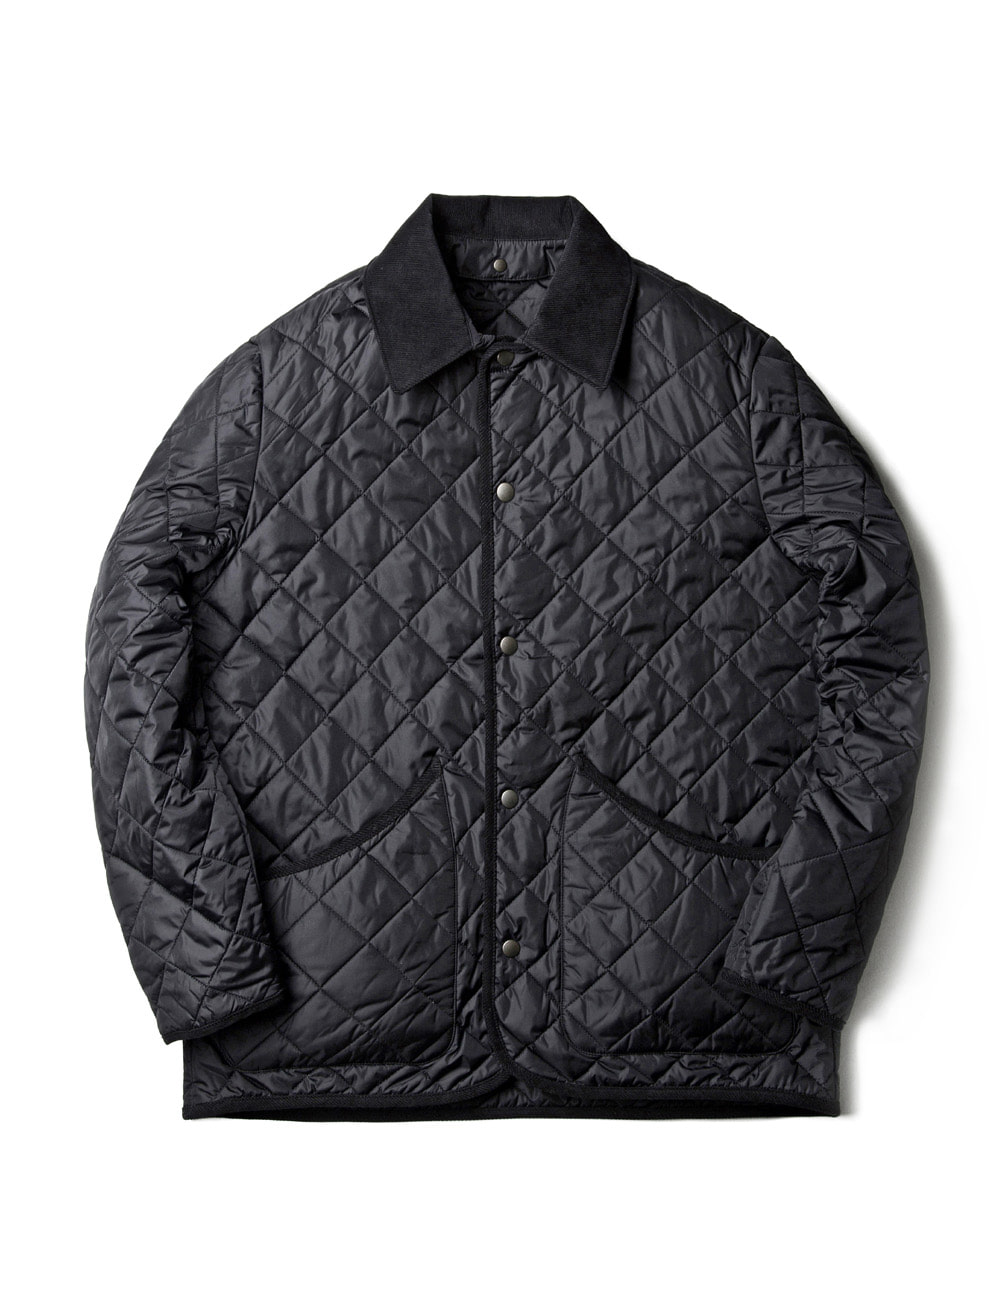 [ESFAI] VOL 3. SN26 DIAMOND QUILTED JACKET (BLACK)